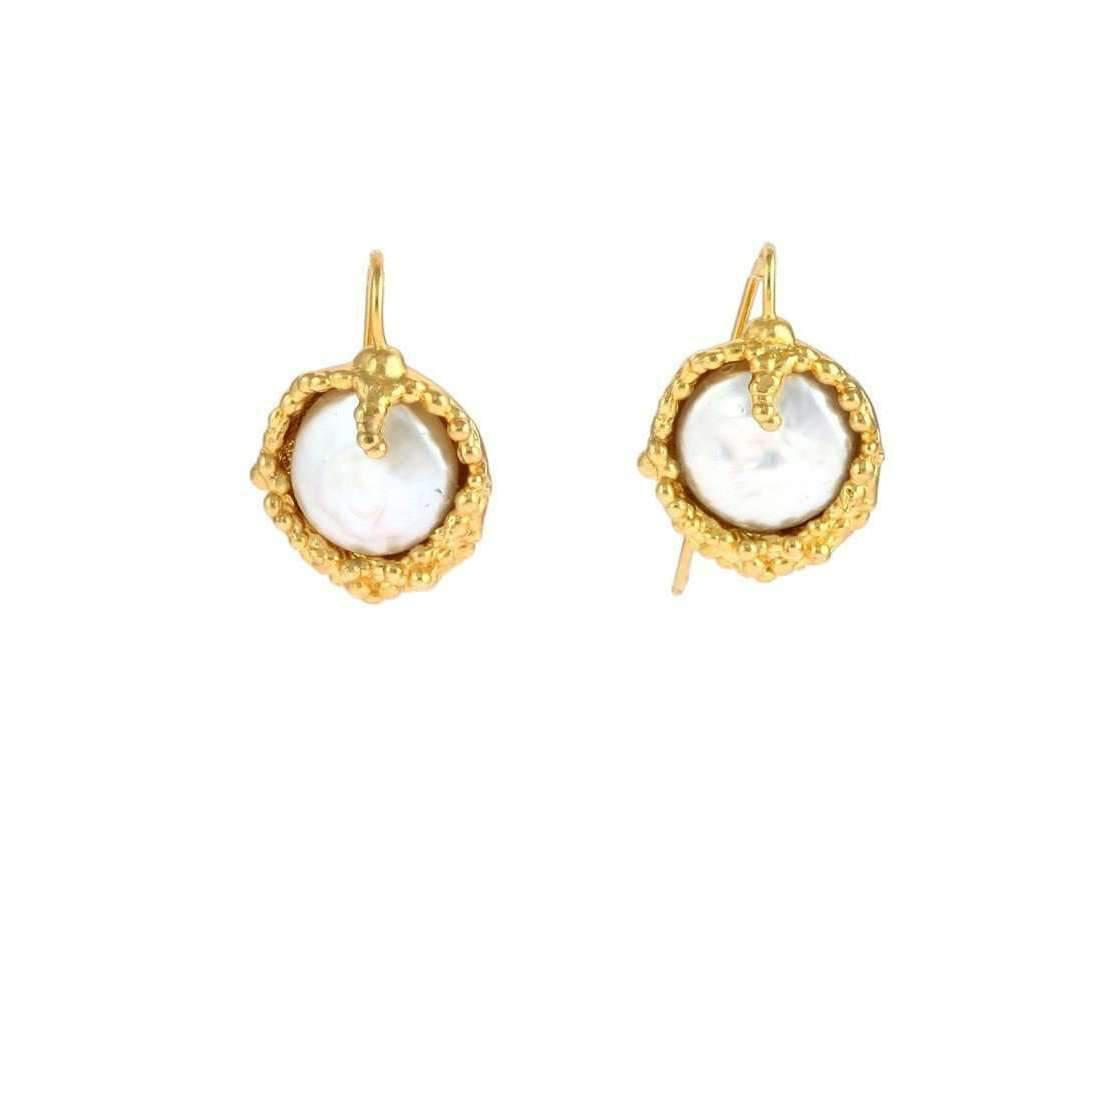 sat earrings gold demo jewellery nithyakalyani type simple earstuds earings of